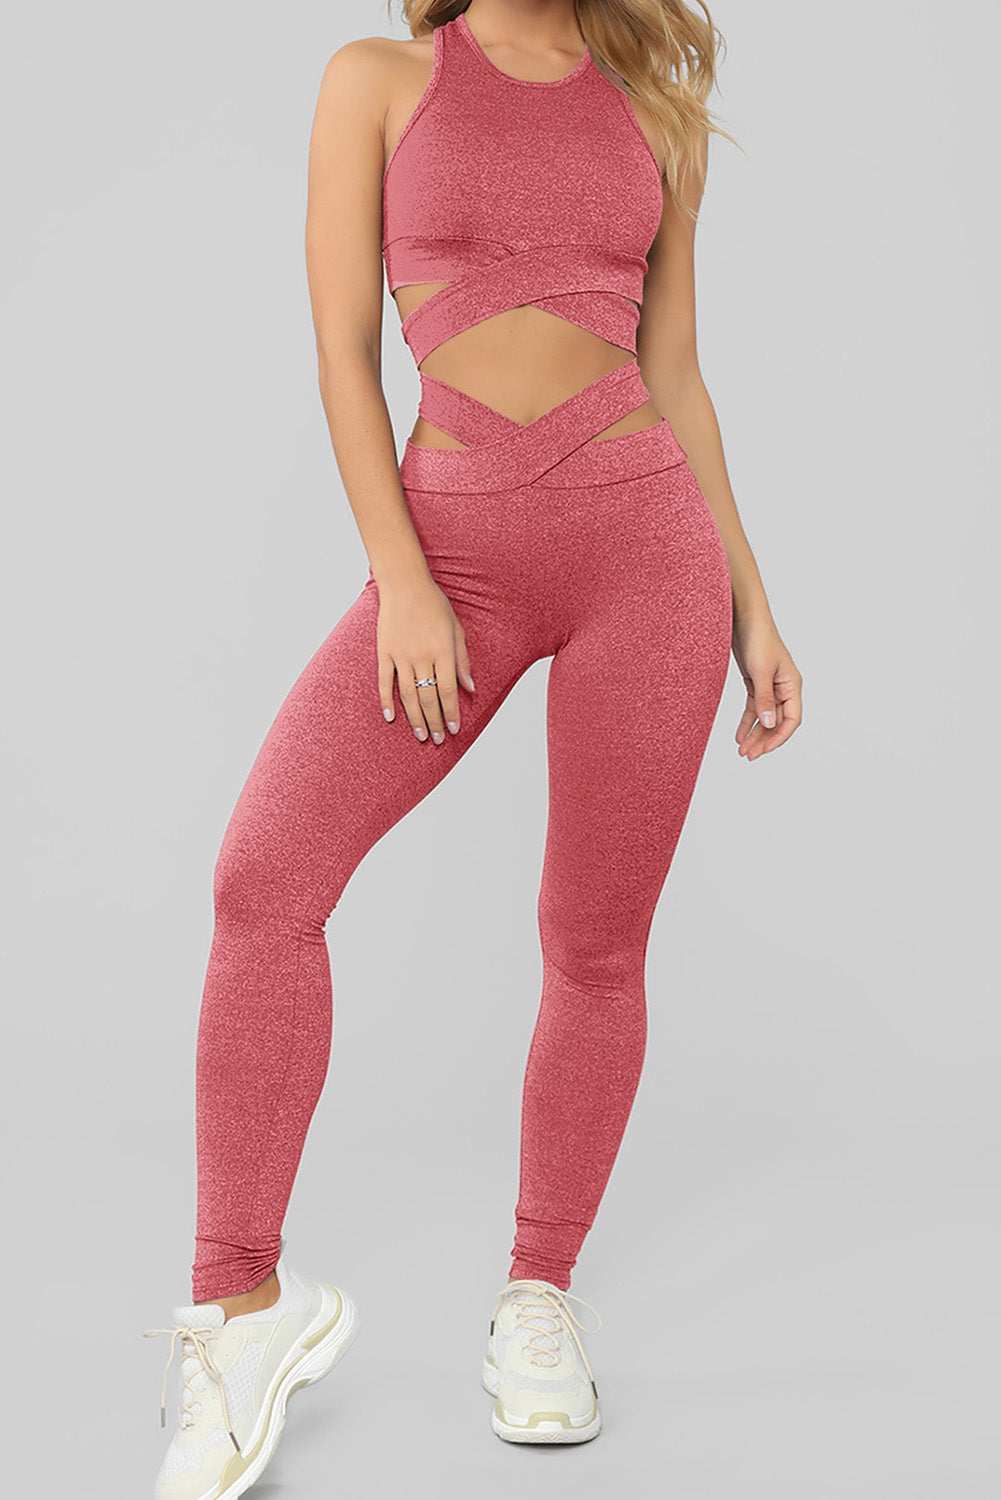 Pink Crisscross Sports Bra and Leggings Set Sports Wear Discount Designer Fashion Clothes Shoes Bags Women Men Kids Children Black Owned Business